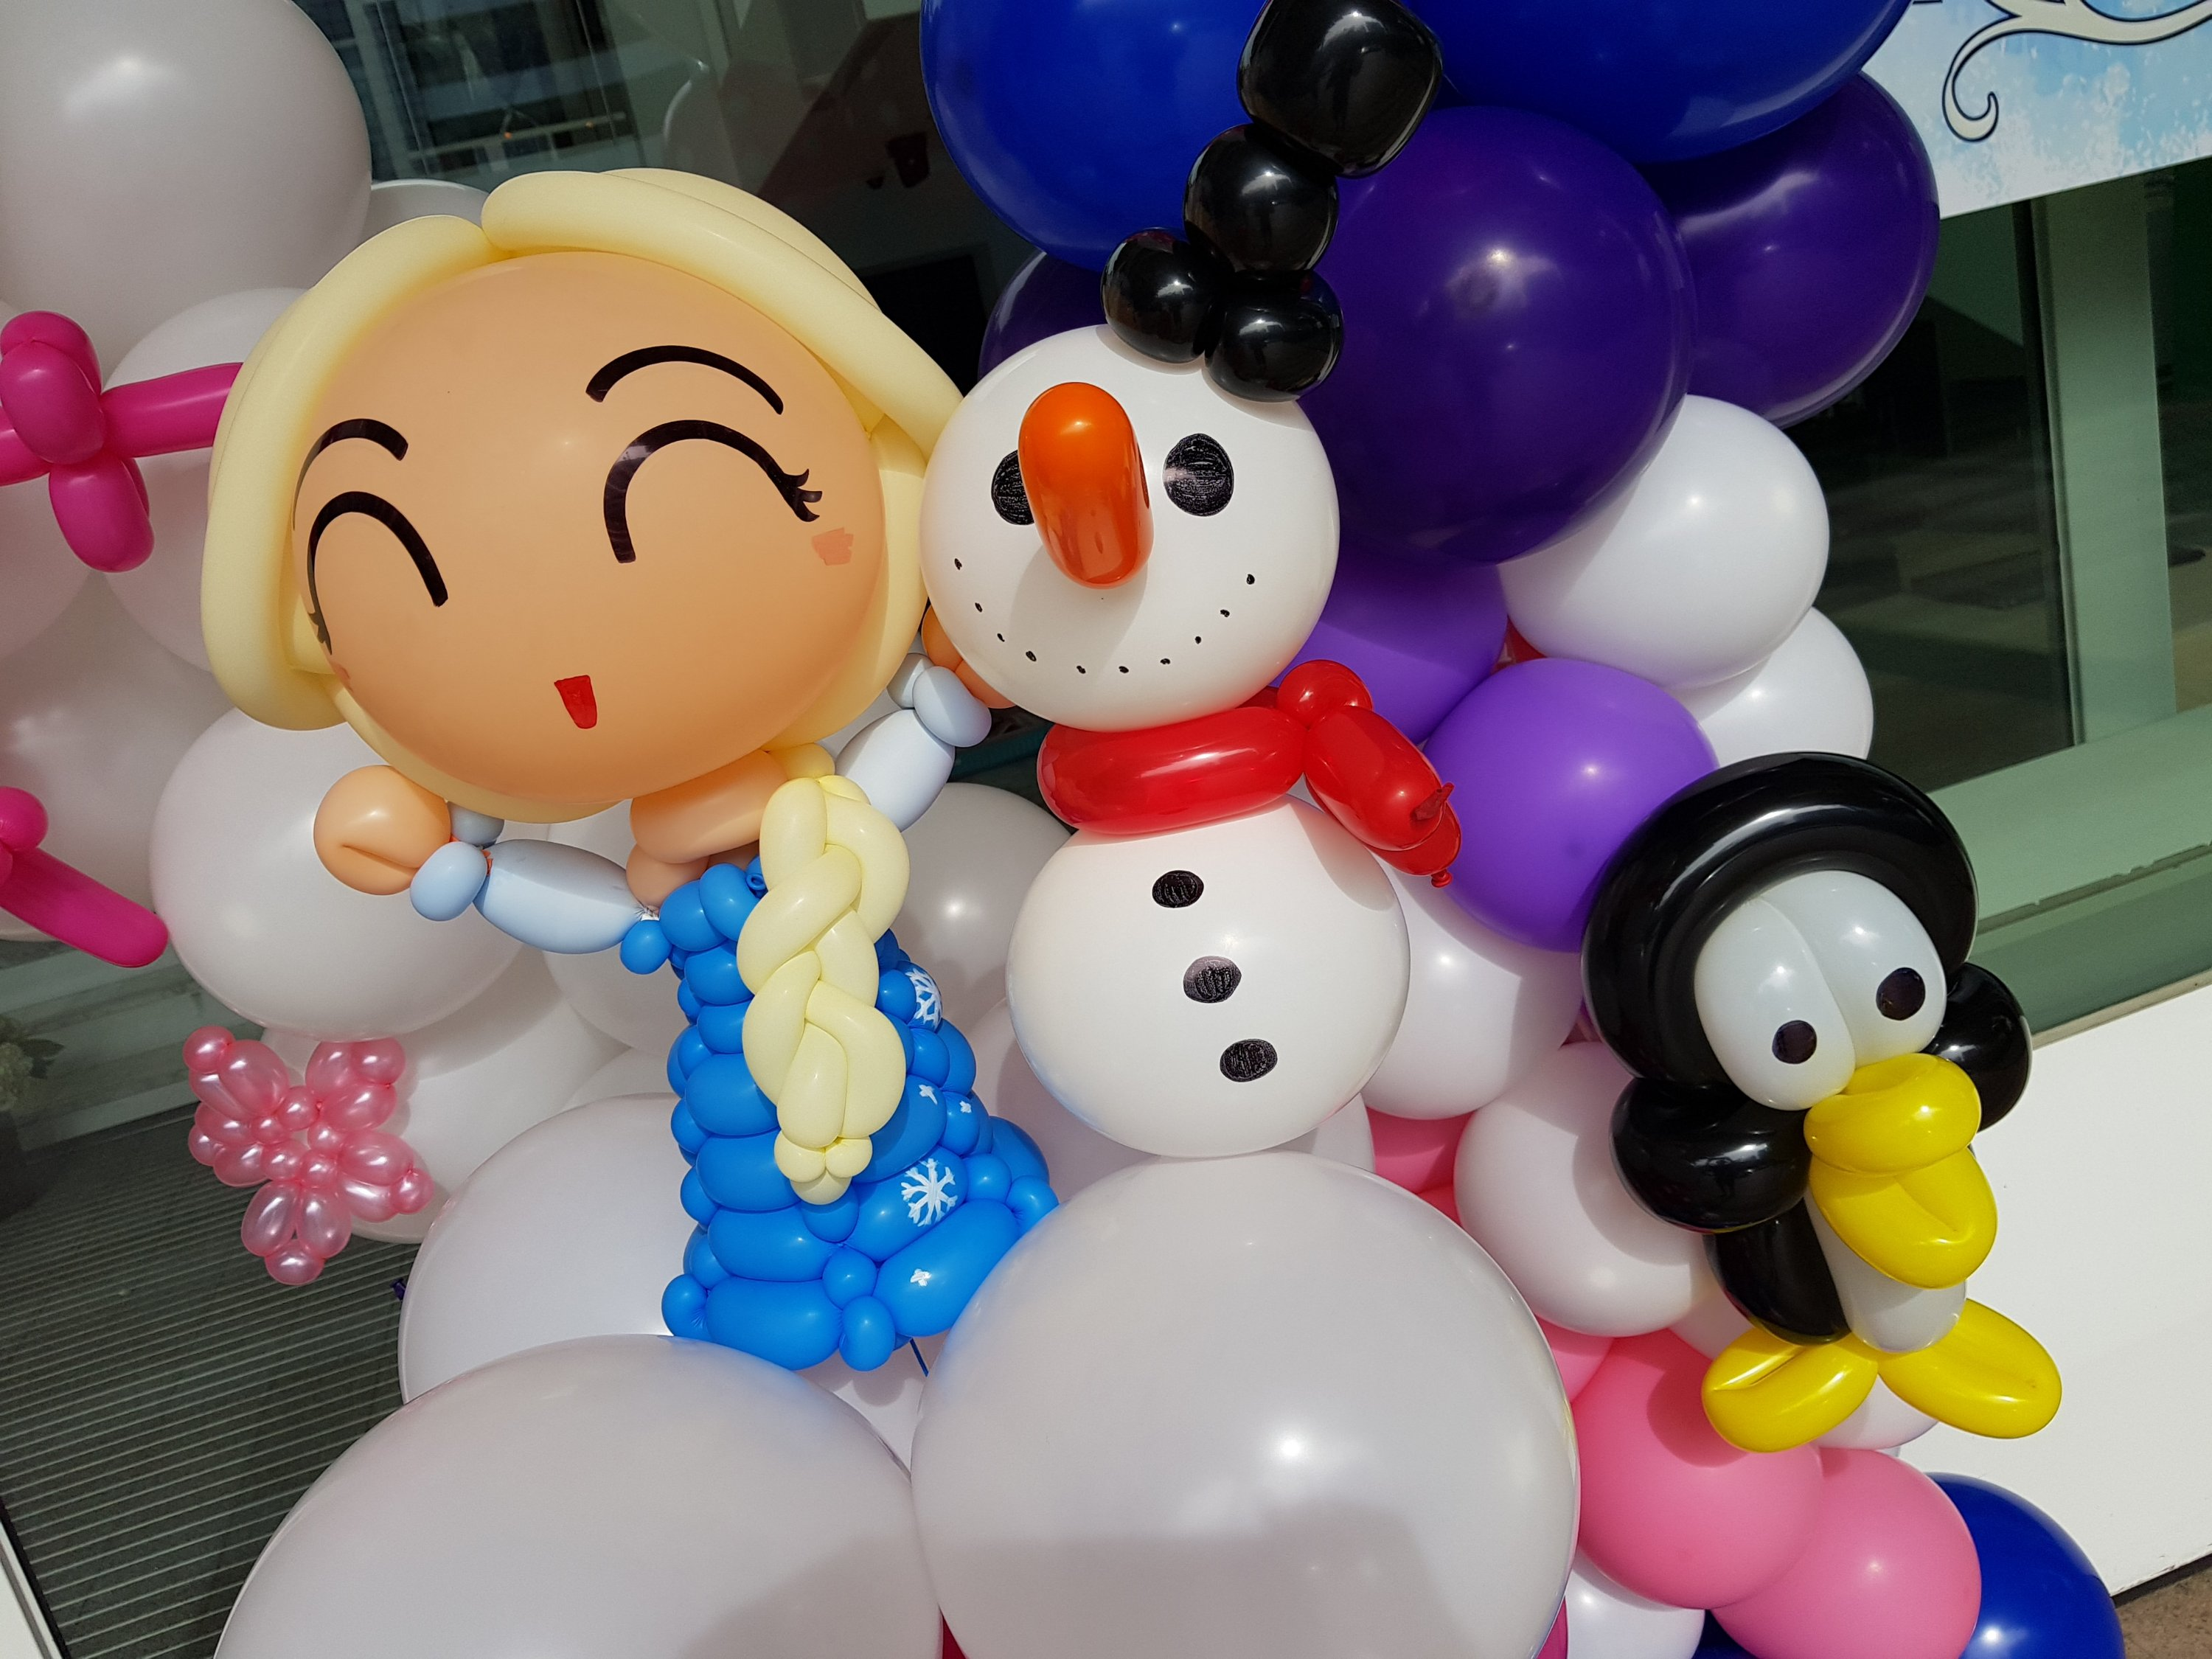 , Elsa and Anna Frozen themed balloon decorations for partymojo!, Singapore Balloon Decoration Services - Balloon Workshop and Balloon Sculpting